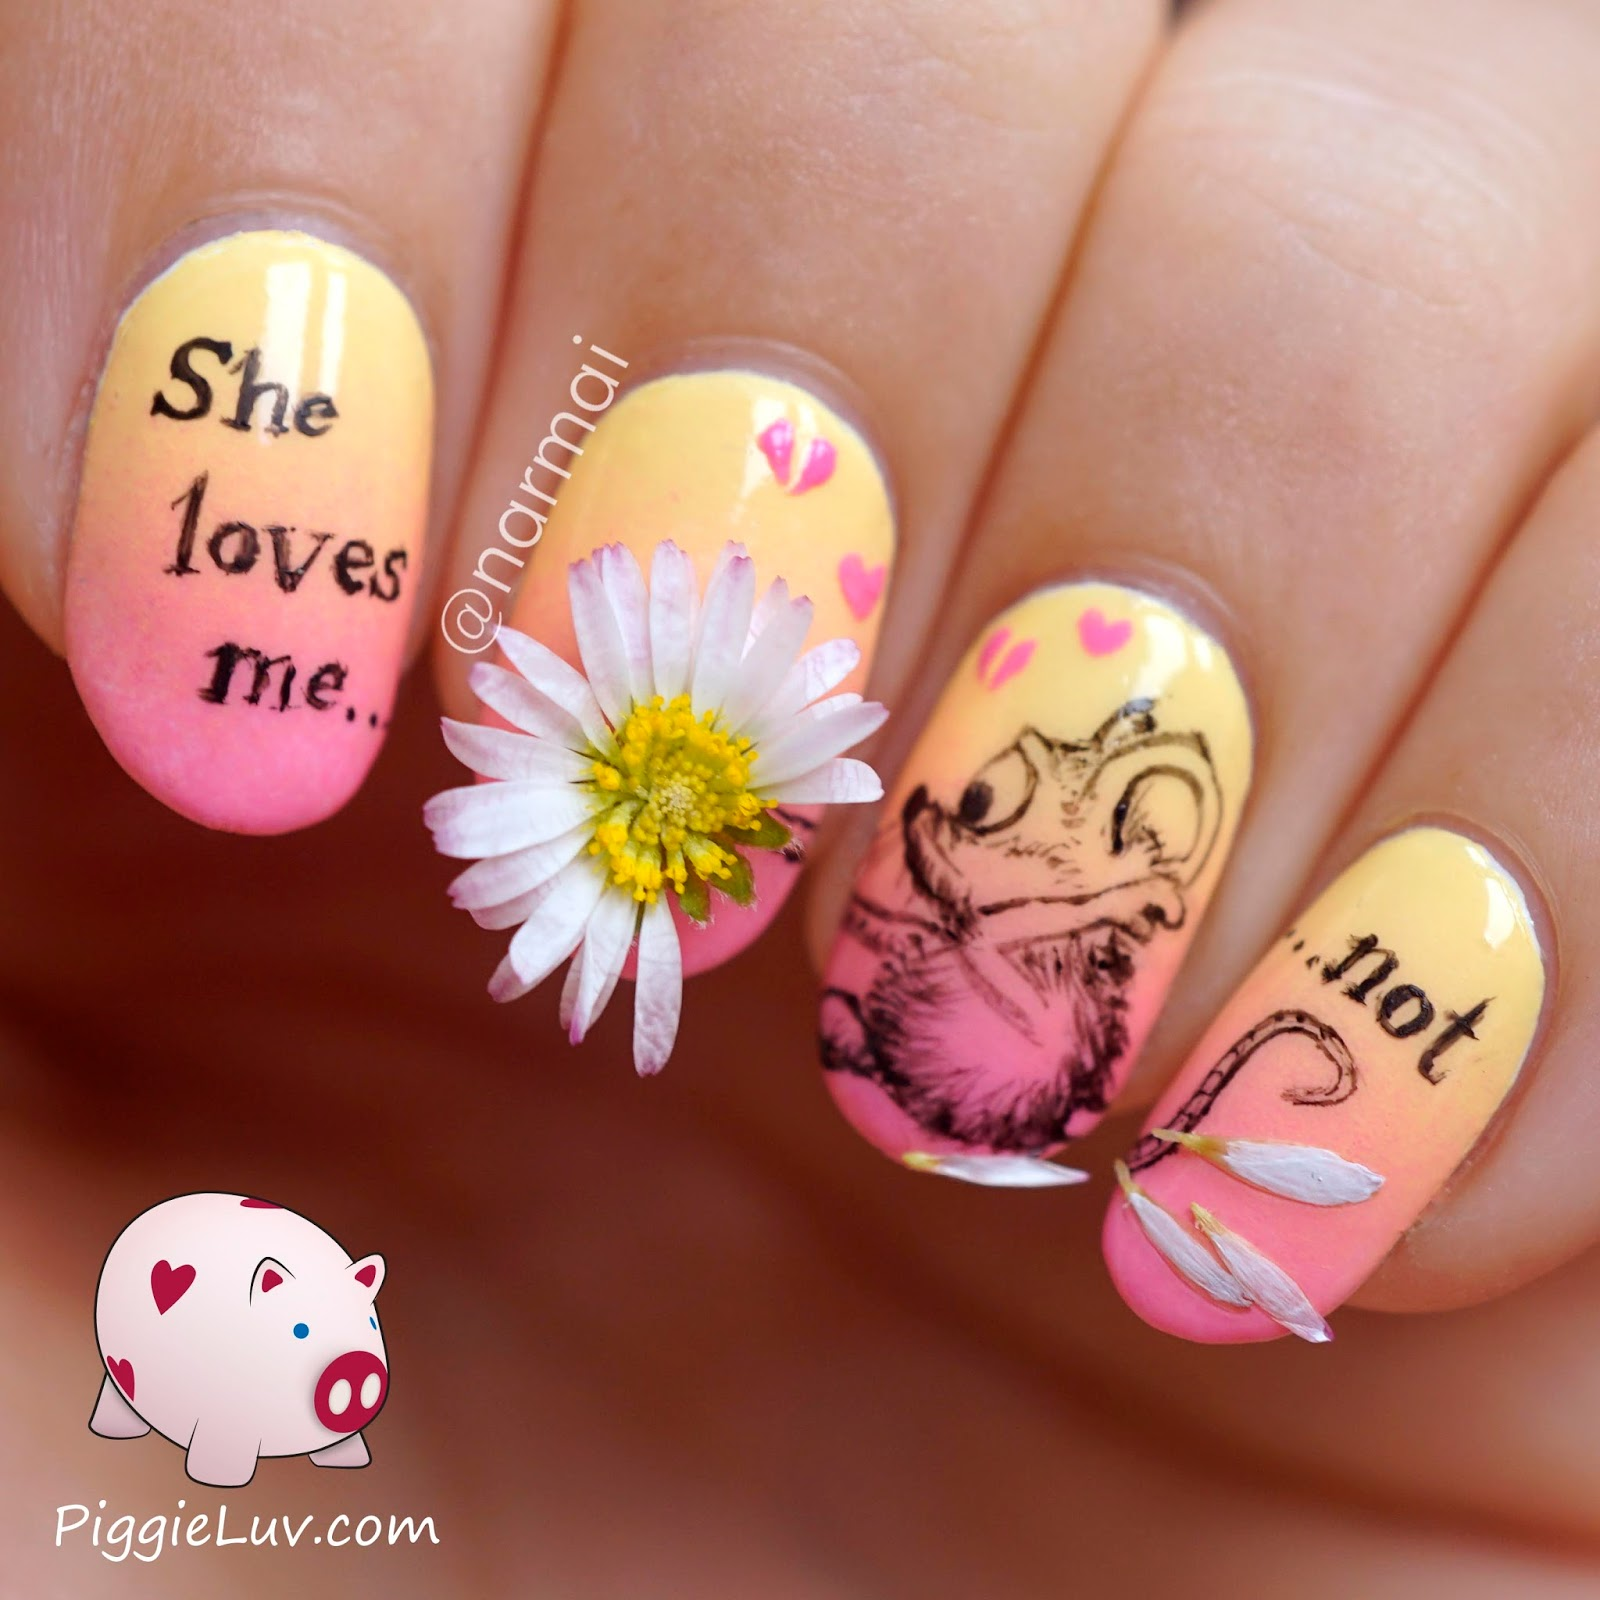 PiggieLuv: \'She loves me not\' nail art with REAL daisy